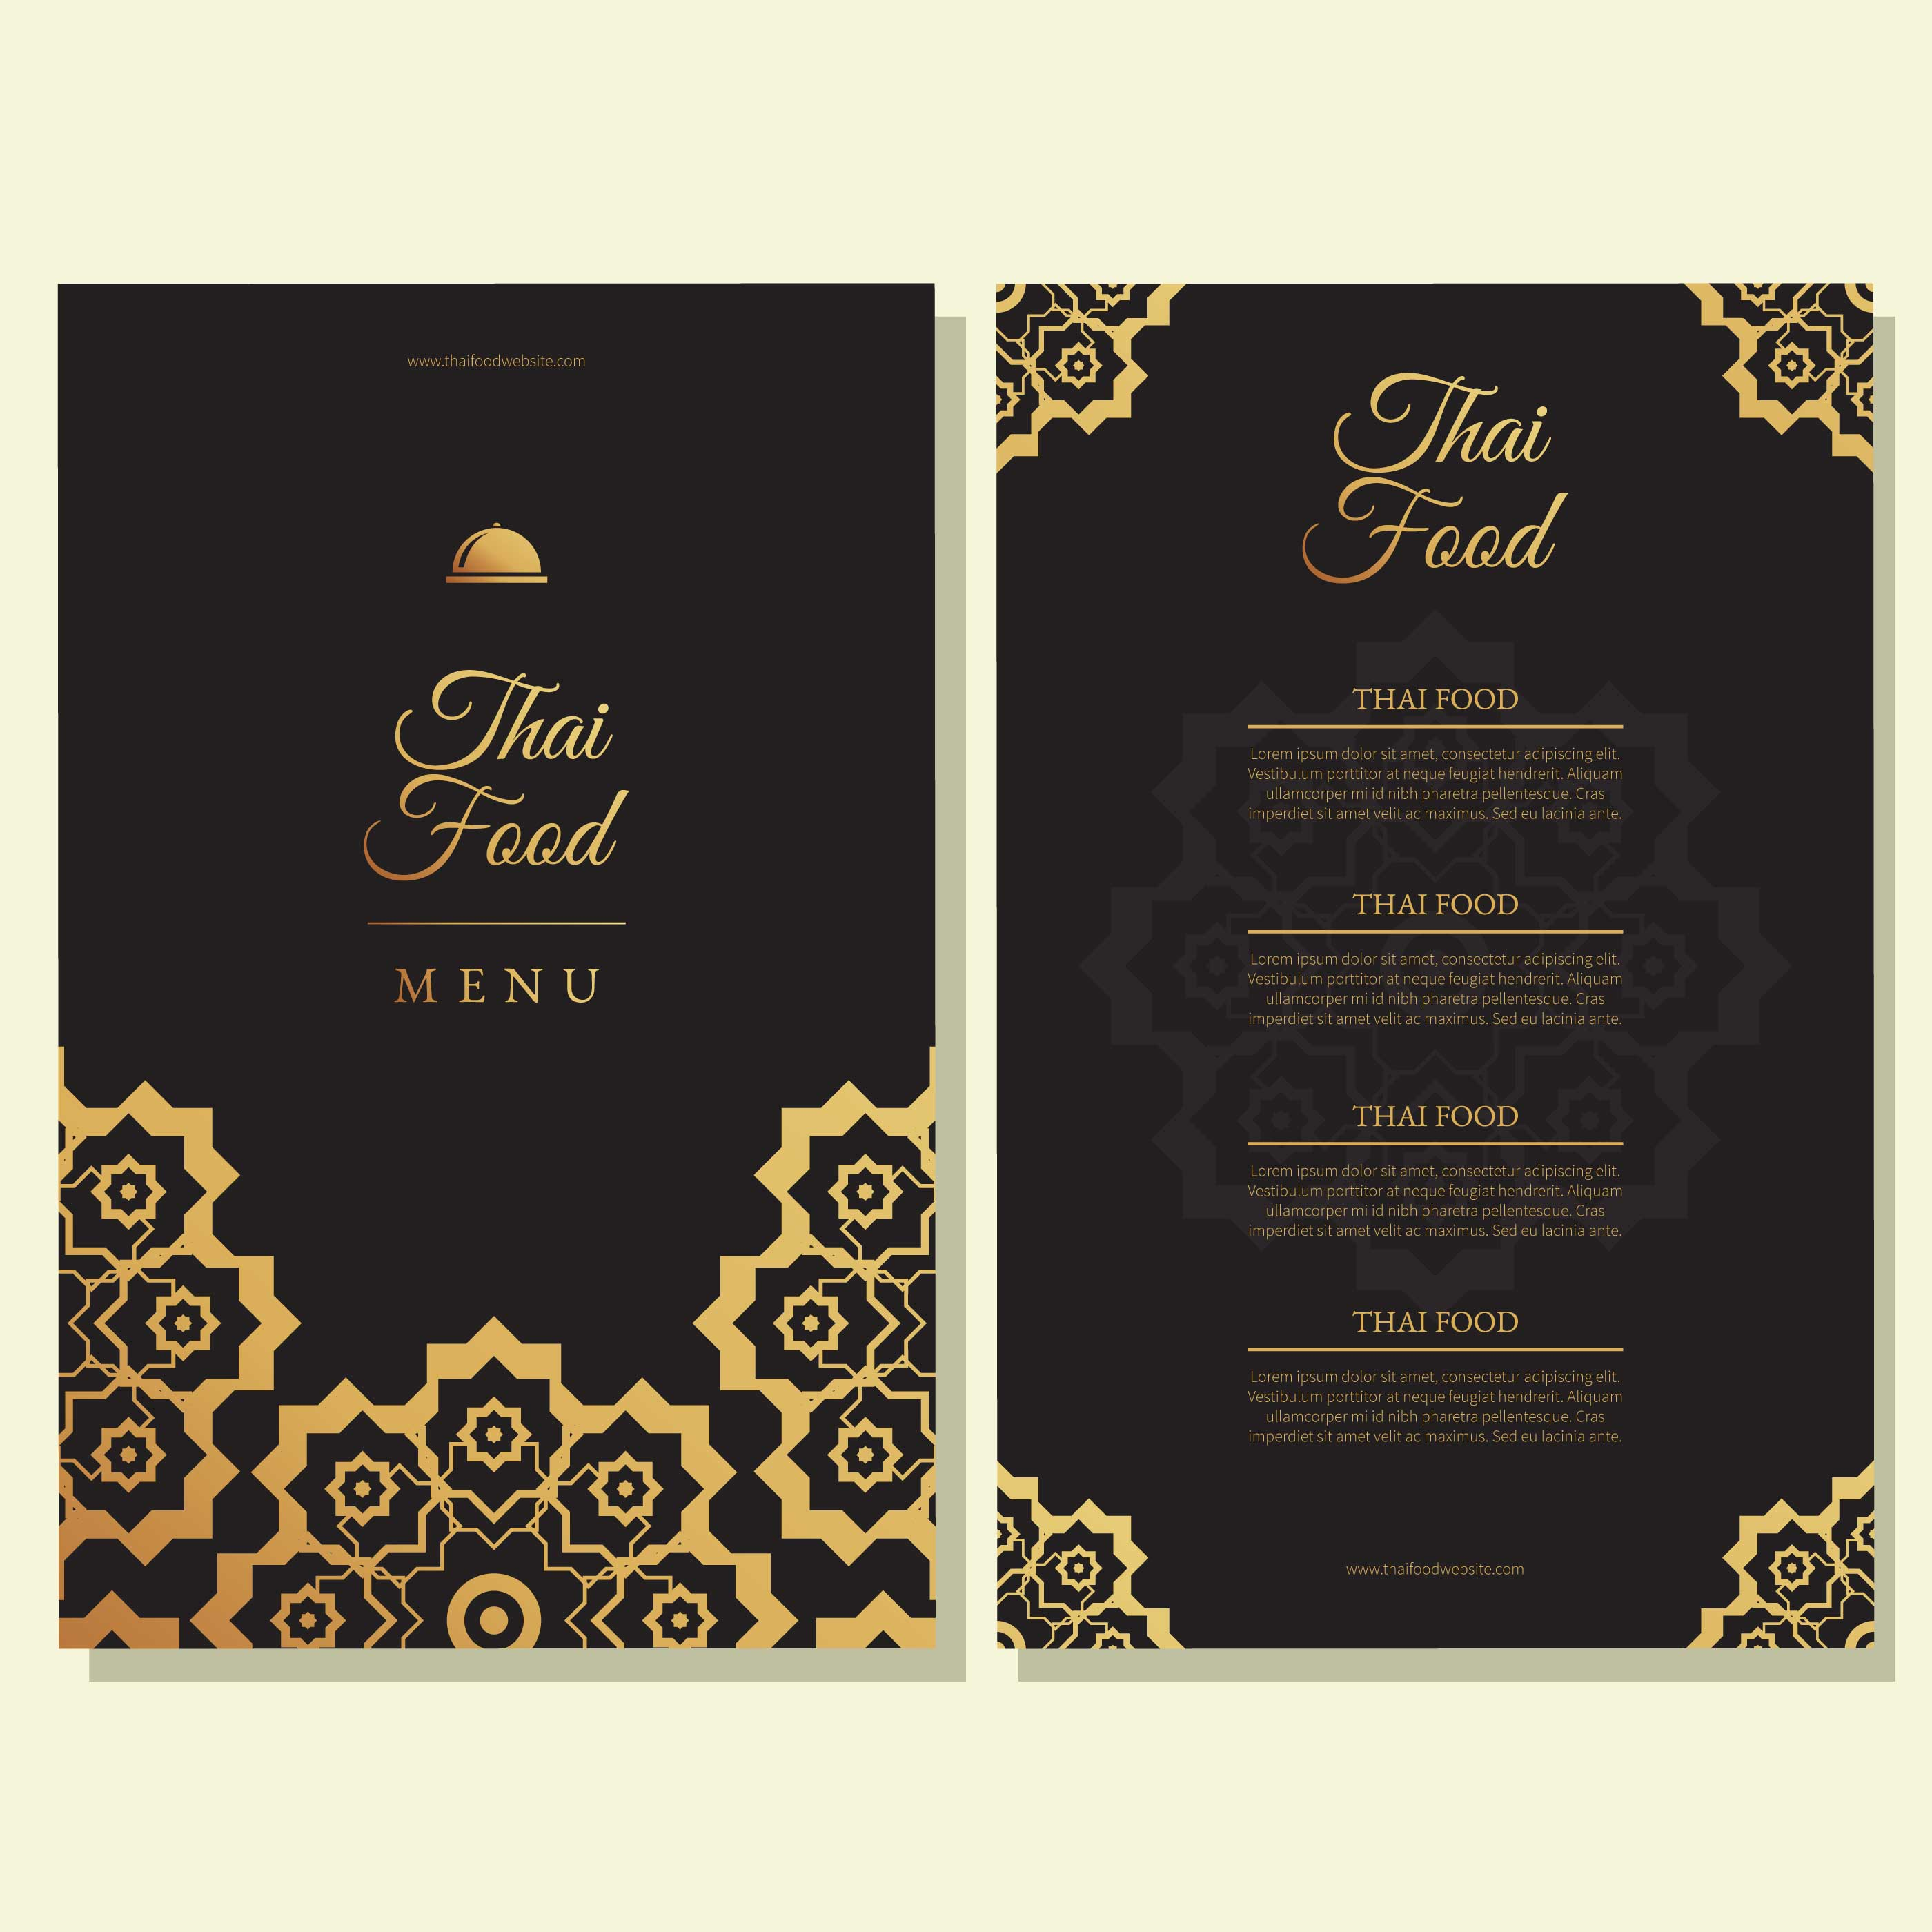 Thai food restaurant menu template download free vector for Artistic cuisine menu